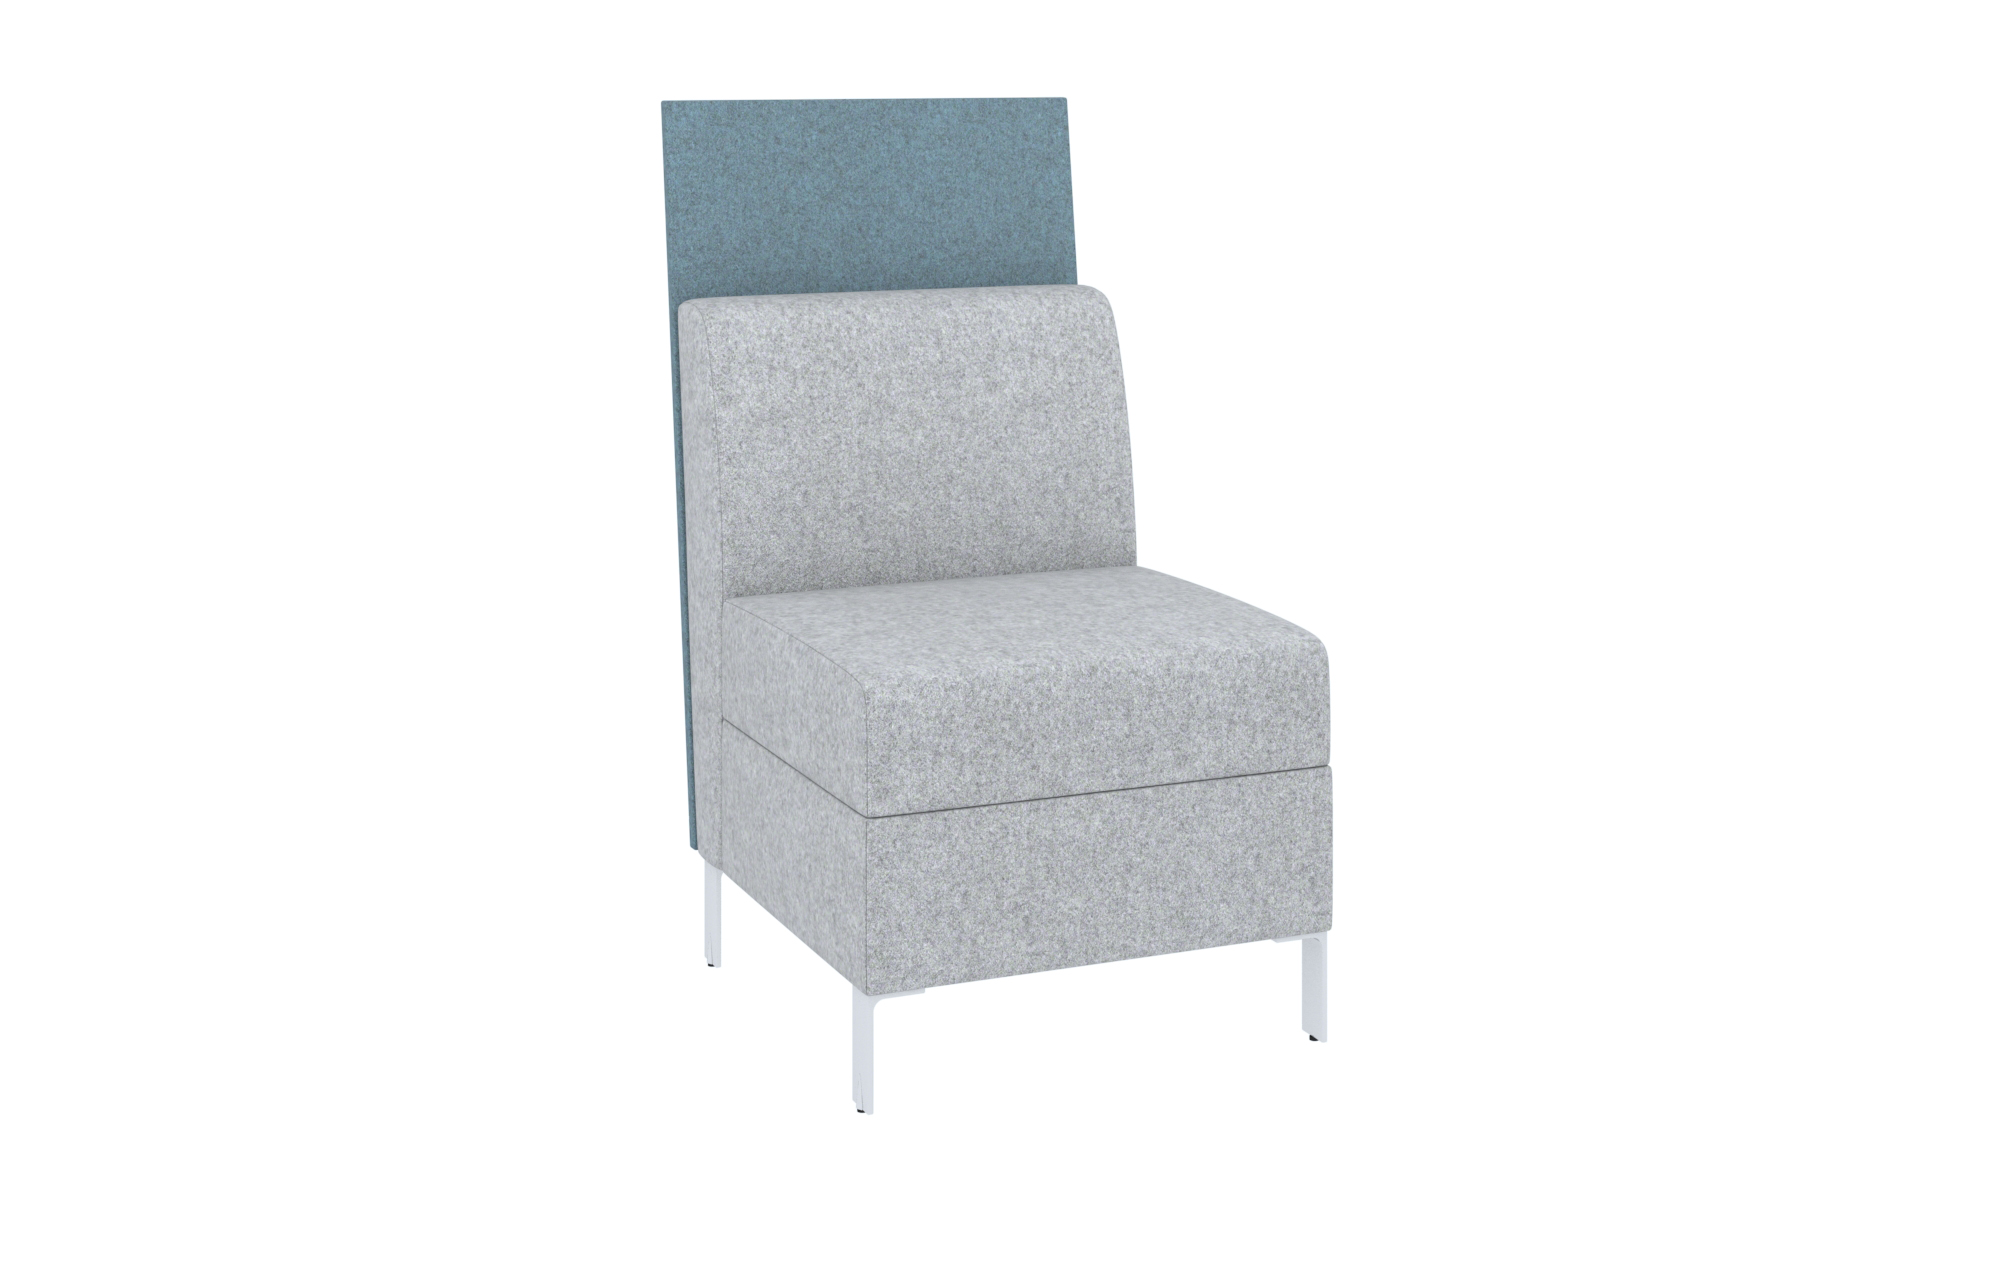 Hickory Contract Gemini Modular Lounge GE-210-P